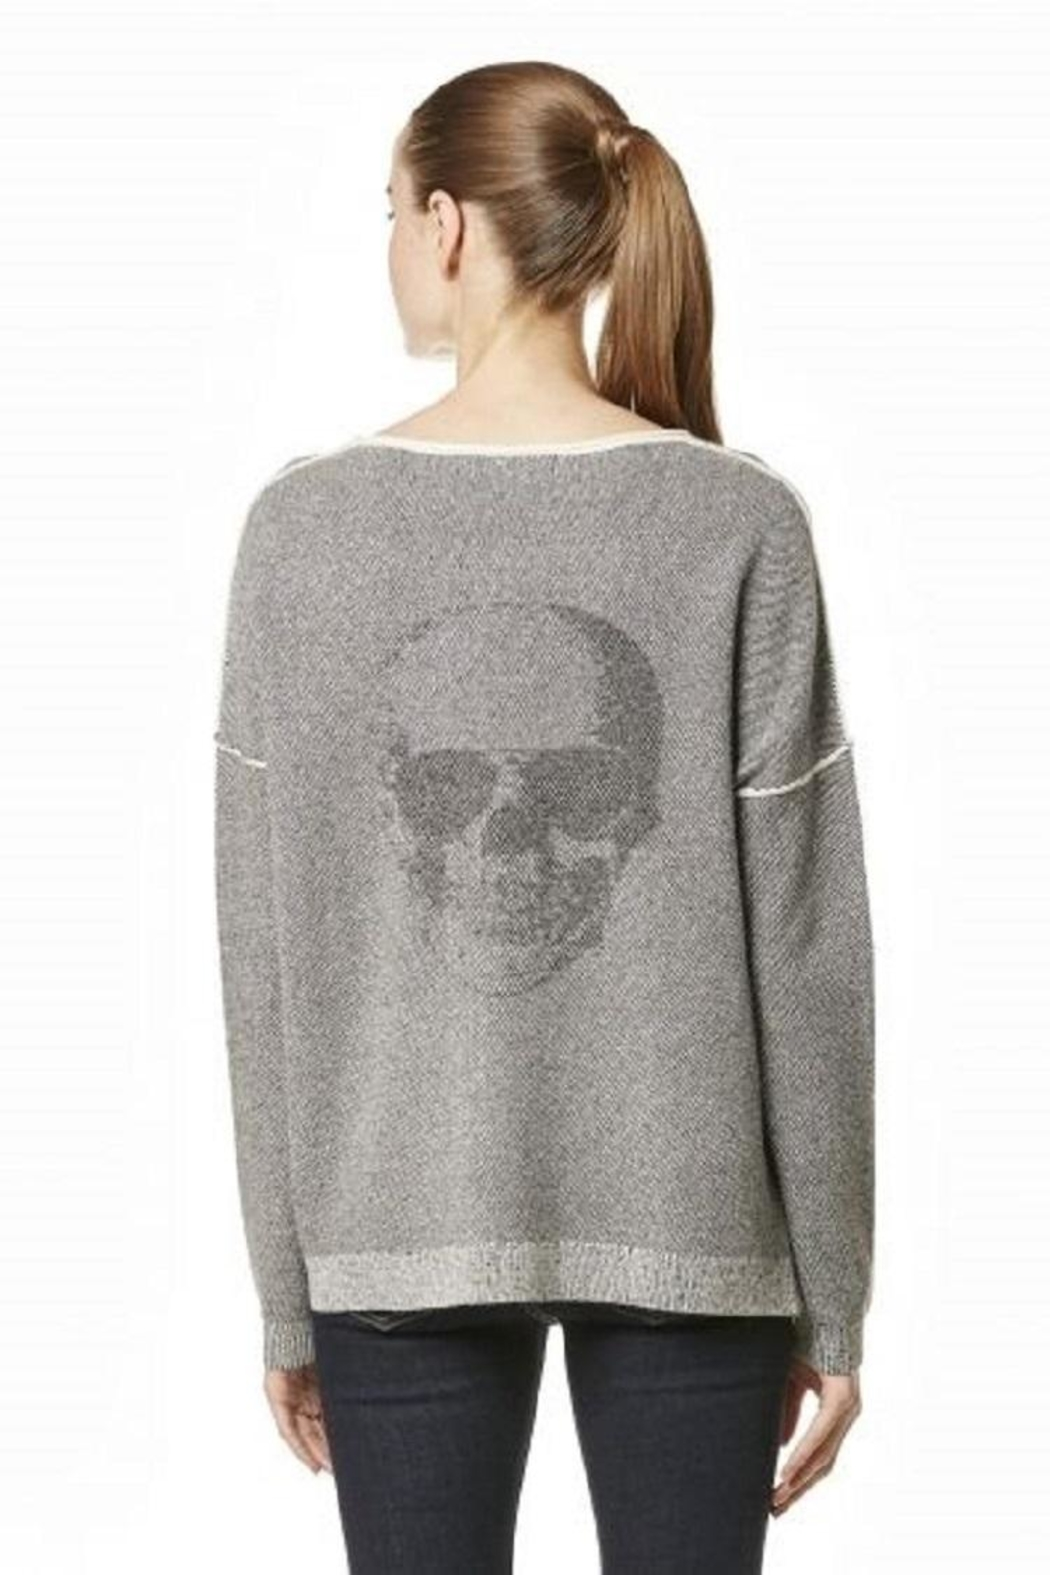 Skull Cashmere Absinthe Grey Sweater - Front Full Image